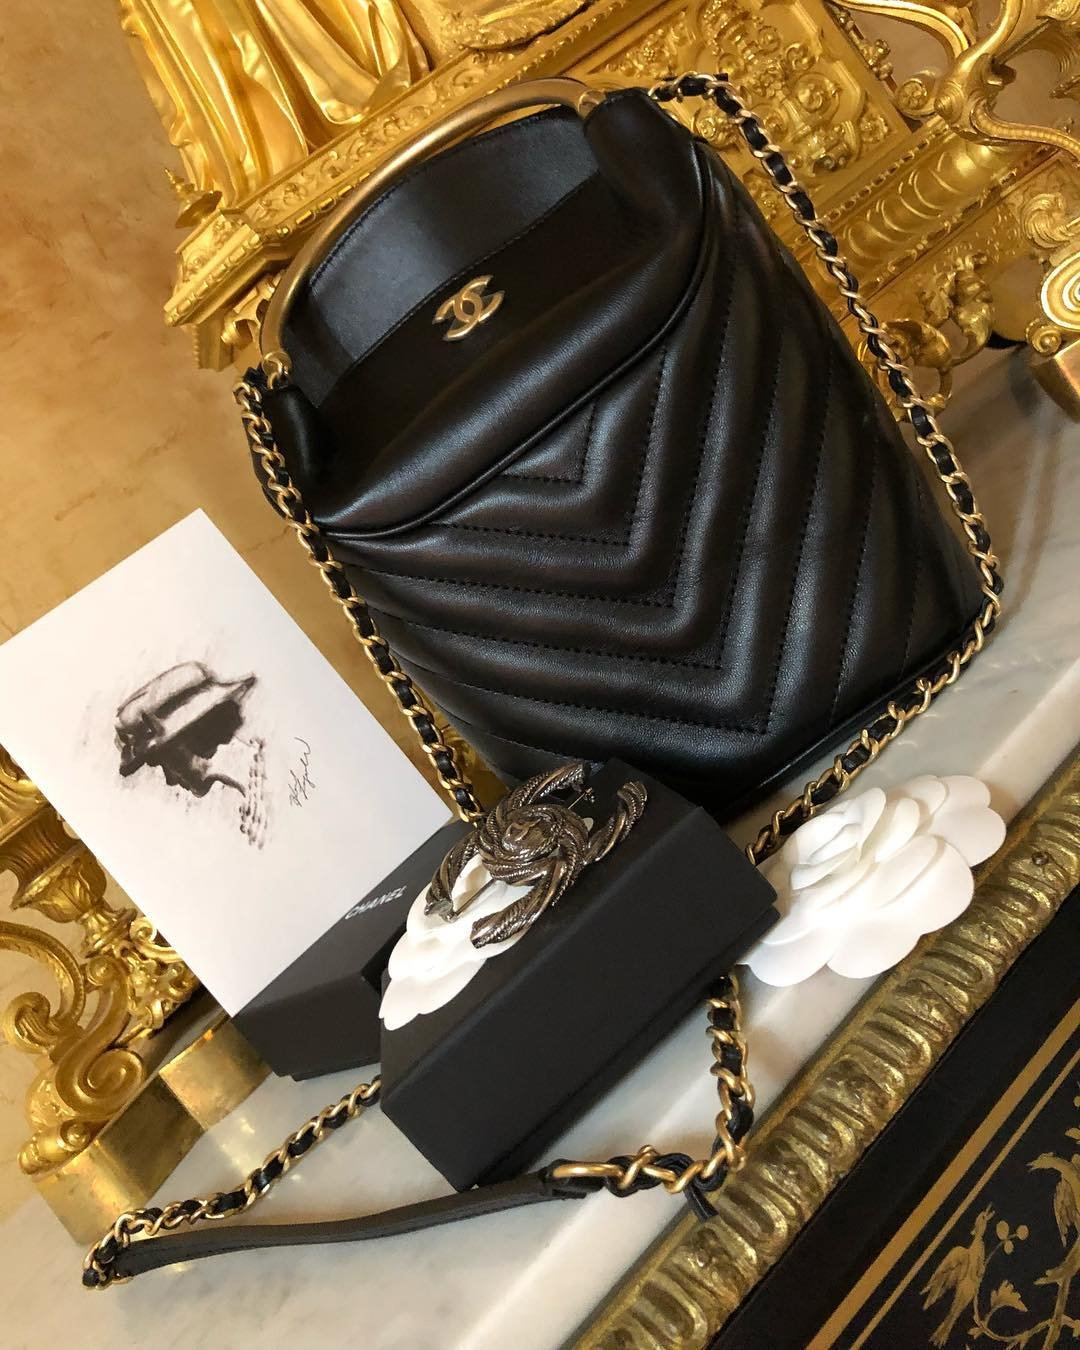 Chanel-Handle-With-Chic-Bag-7